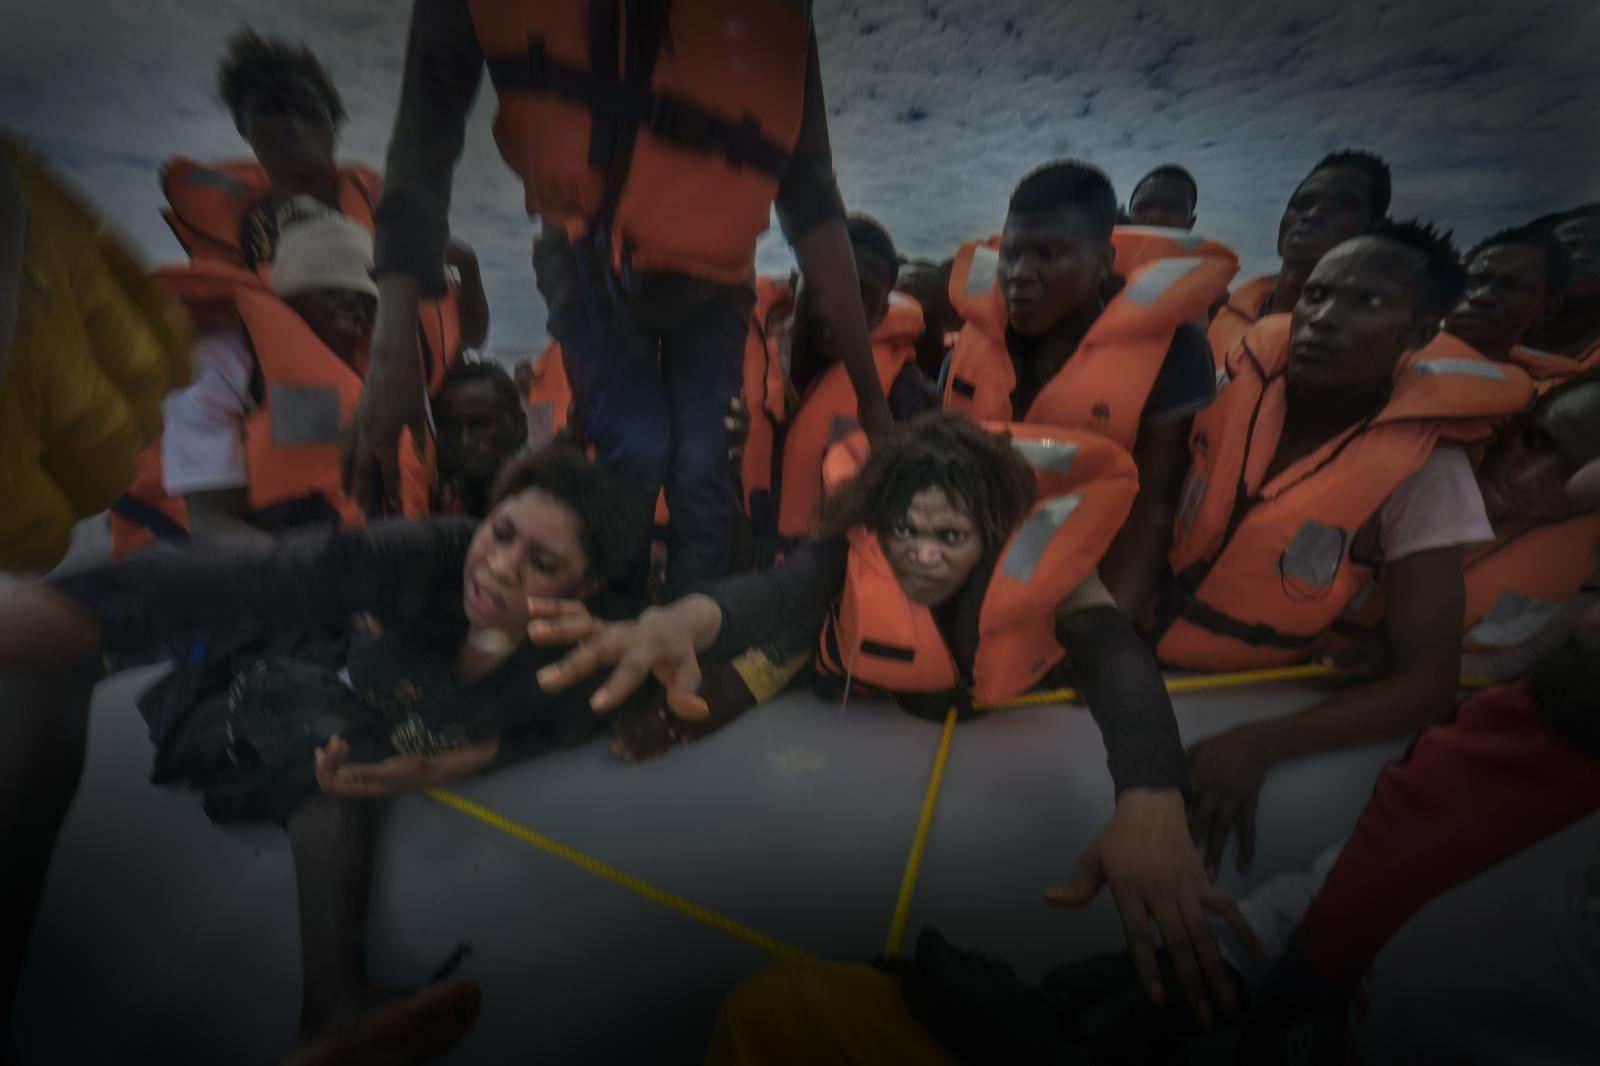 Sub-Saharan refugees and migrants desperately attempt to disembark from the inflatable boat in which they have travelled for several hours, and from which they are now being rescued on the Mediterranean Sea by members of the NGO Doctors Without Borders.